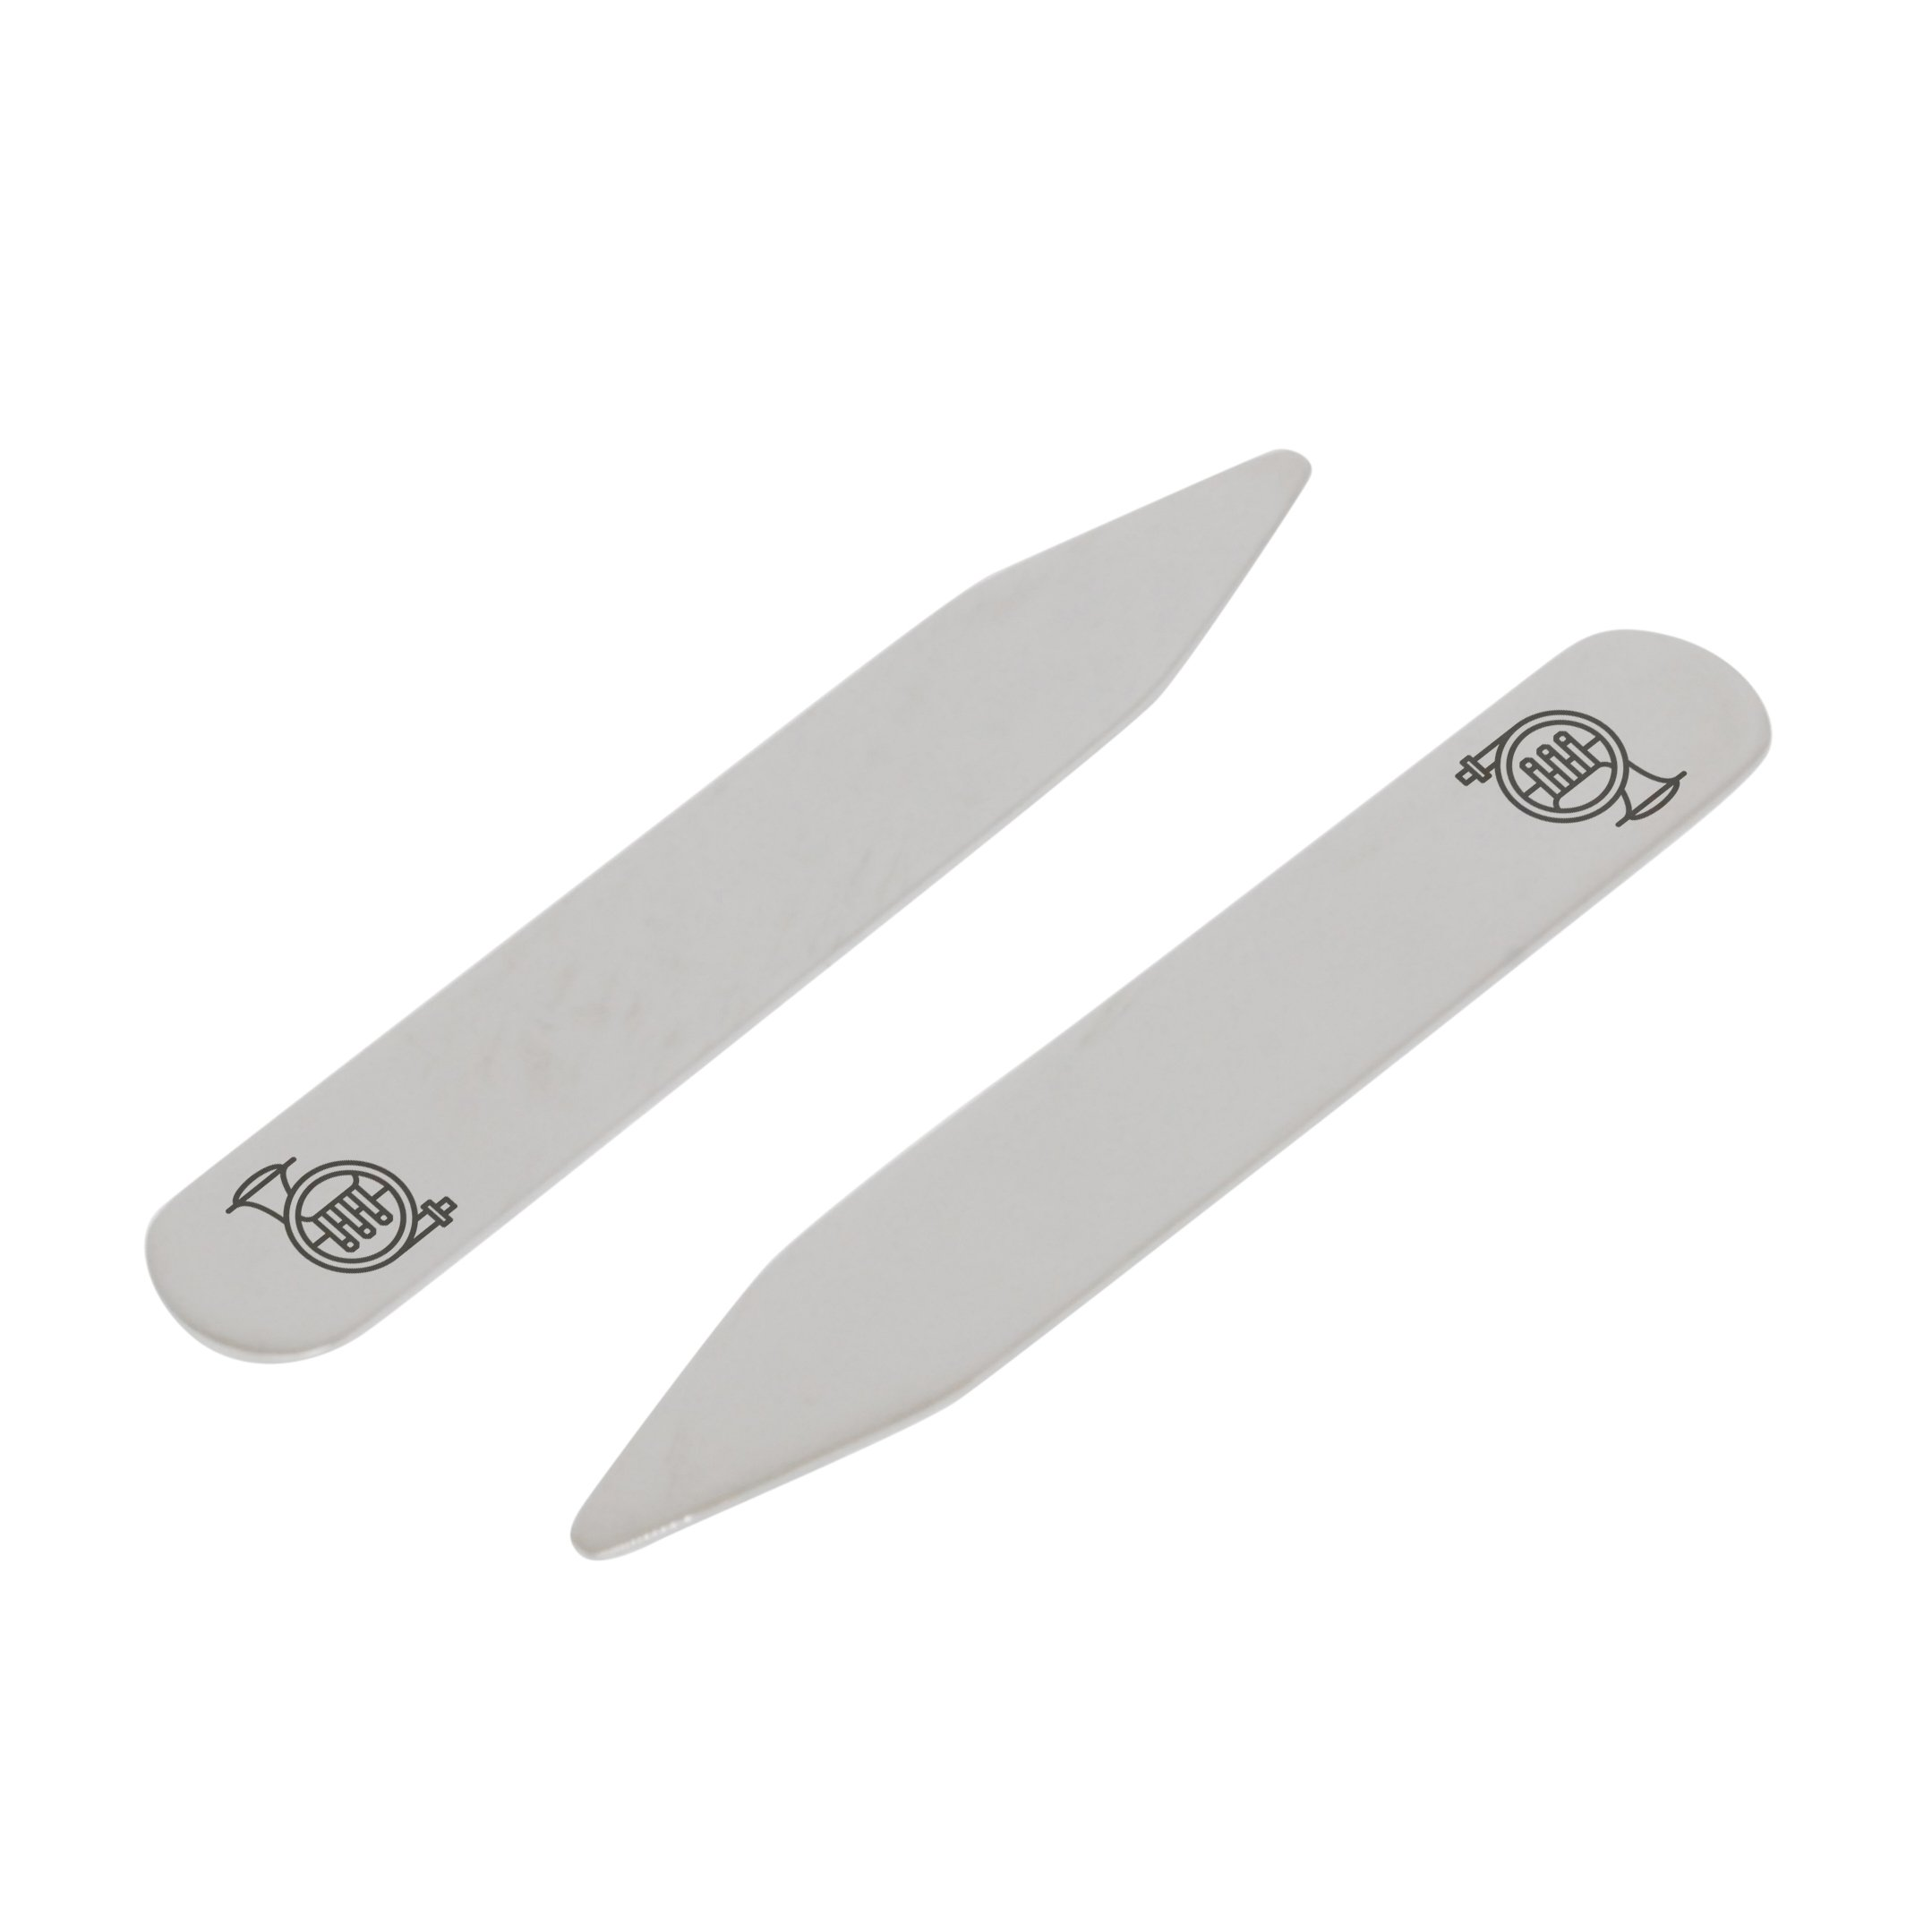 MODERN GOODS SHOP Stainless Steel Collar Stays With Laser Engraved Tuba Design - 2.5 Inch Metal Collar Stiffeners - Made In USA